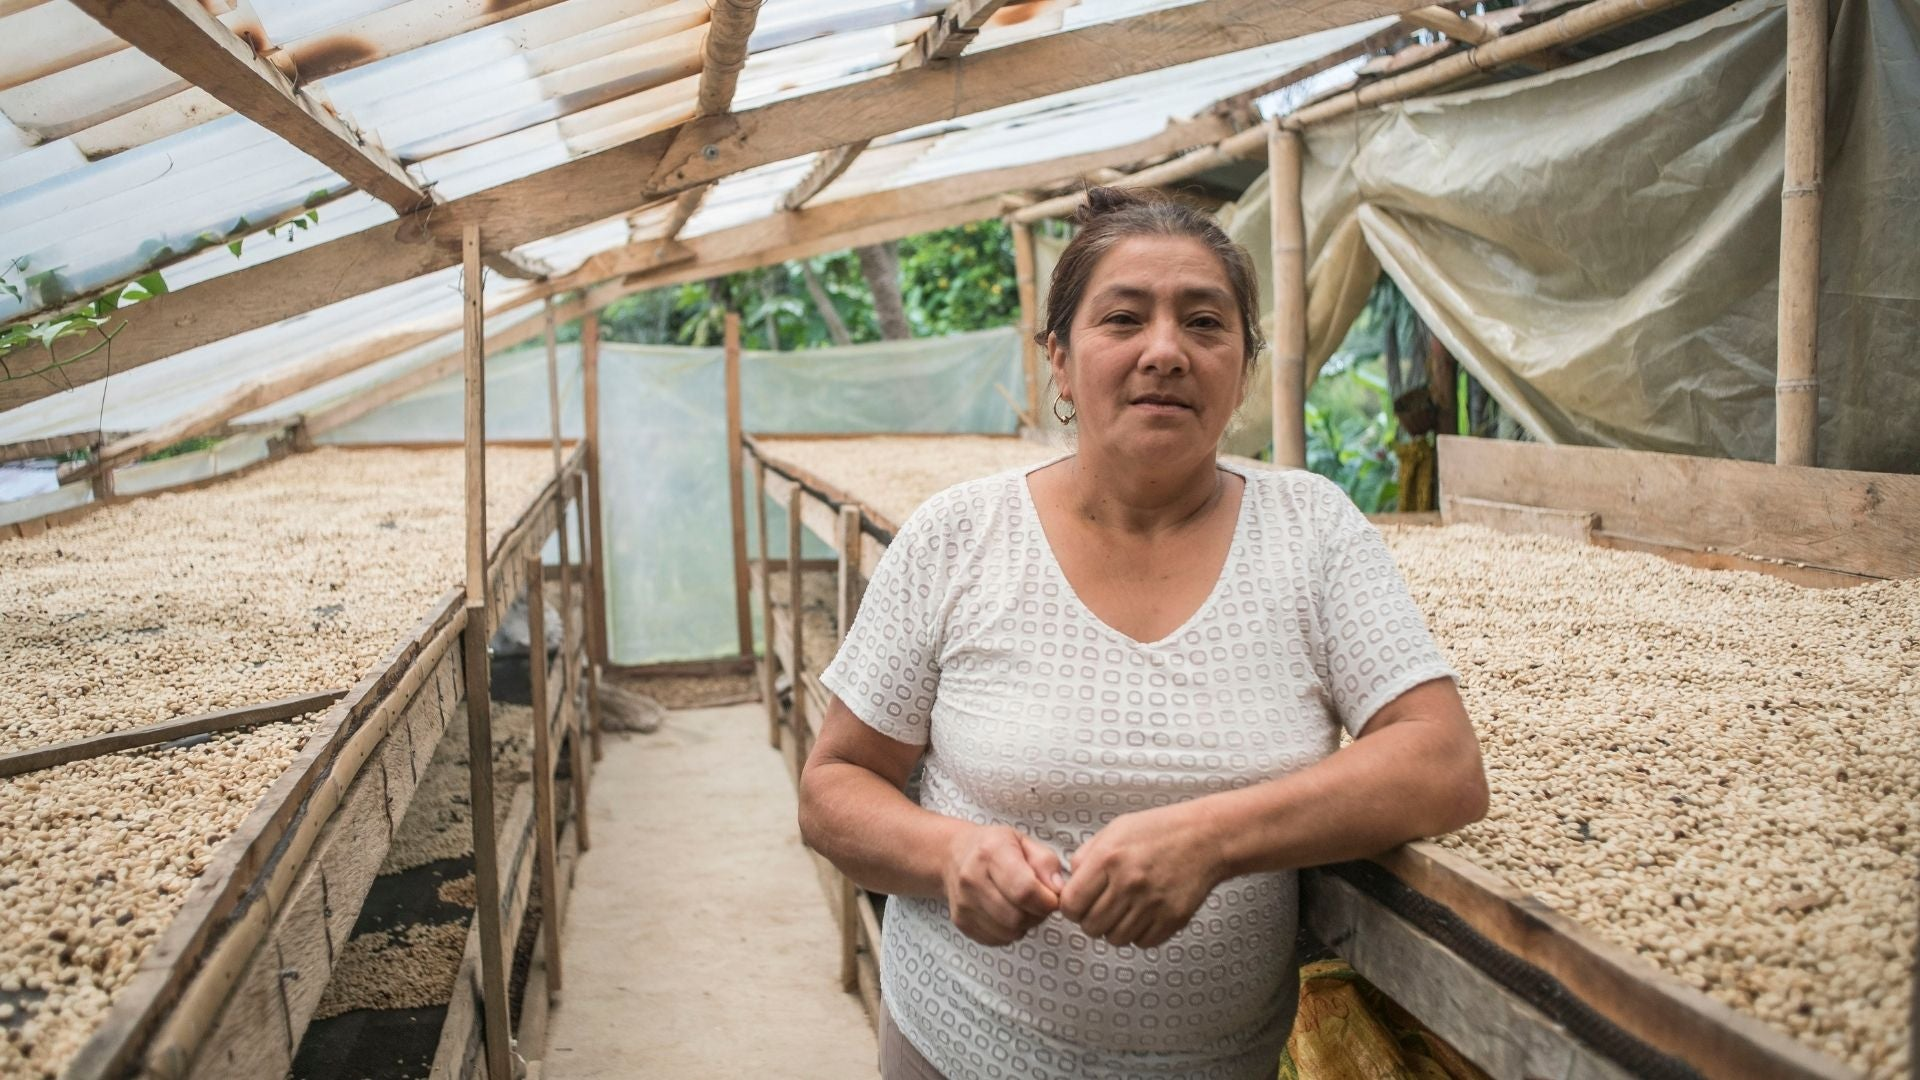 Colombian Café Femenino - Image courtesy of Fair Trade TRANSFAIR USA.